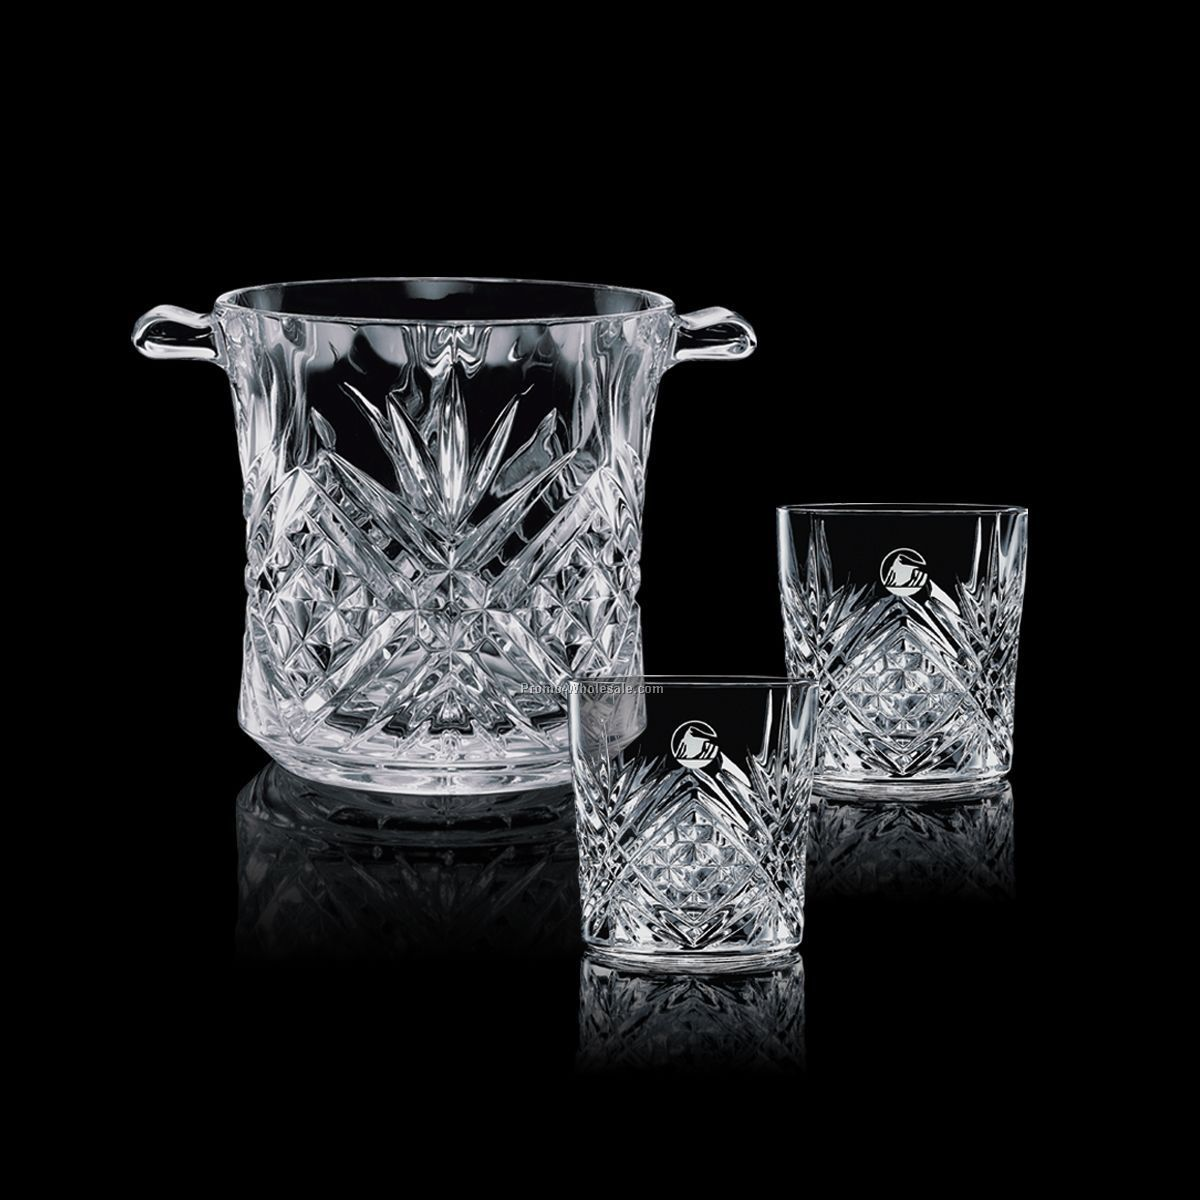 Milford Crystal Ice Bucket & 2 On-the-rocks Glasses